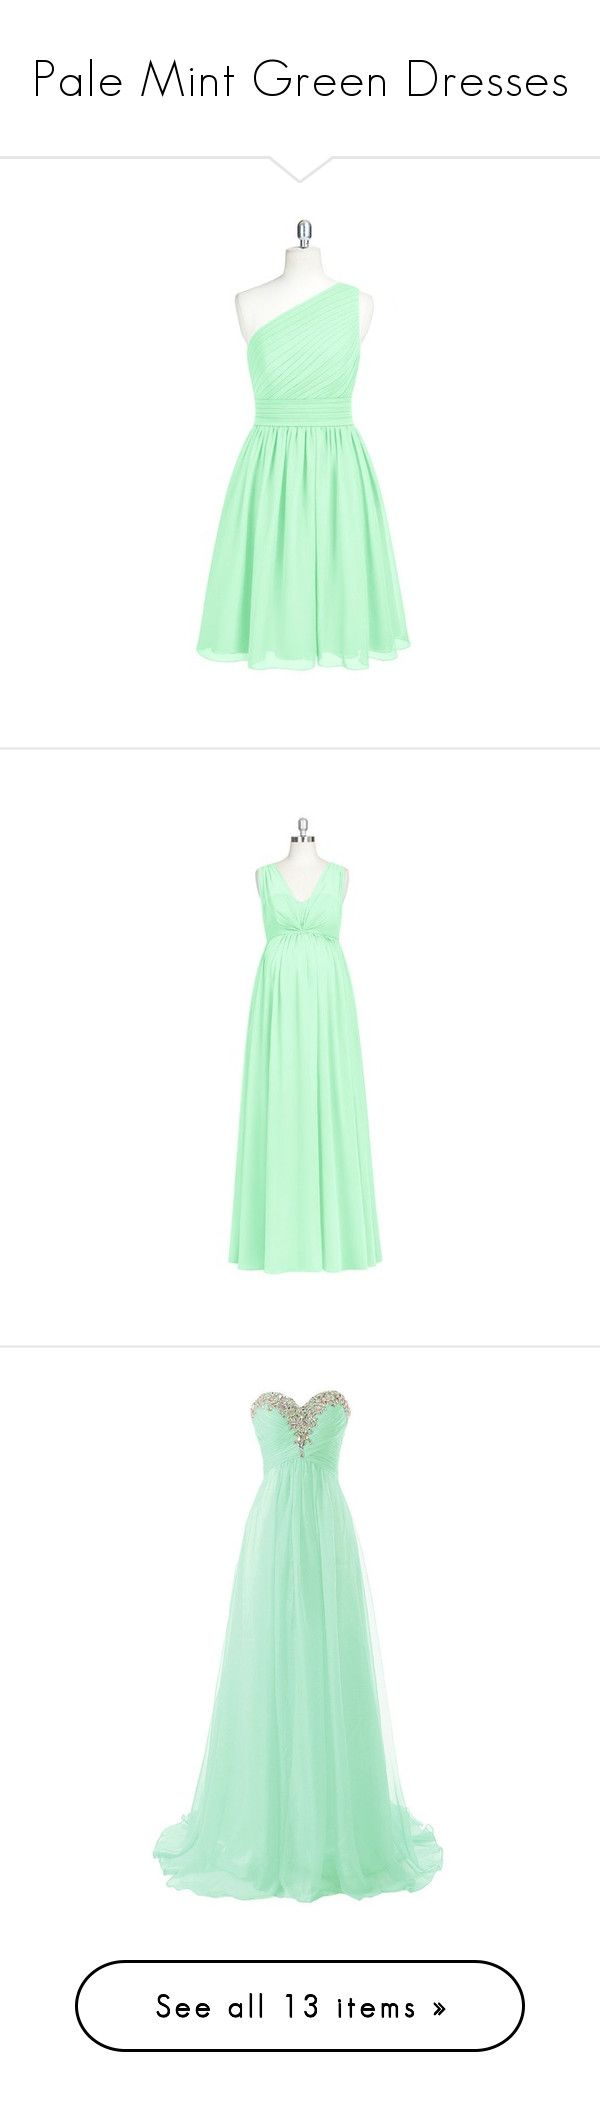 """""""Pale Mint Green Dresses"""" by tegan-b-riley on Polyvore featuring dresses, night out dresses, green party dress, bridal dresses, green color dress, bridesmaid dresses, maternity, long green dress, formal dresses and green dress"""